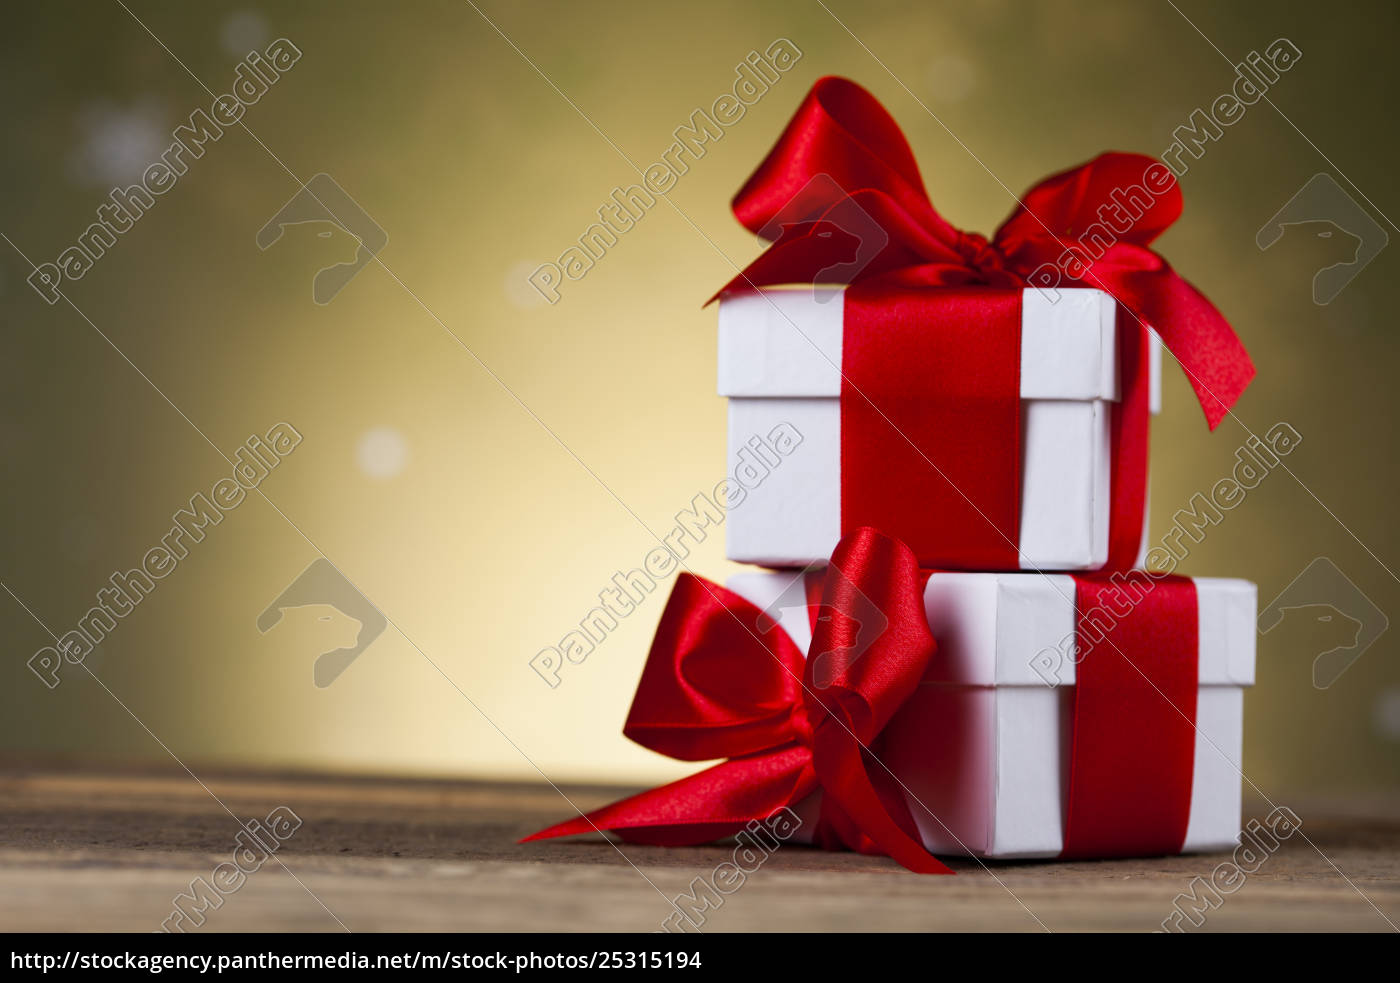 christmastime, celebration, , gift, box, with, red - 25315194